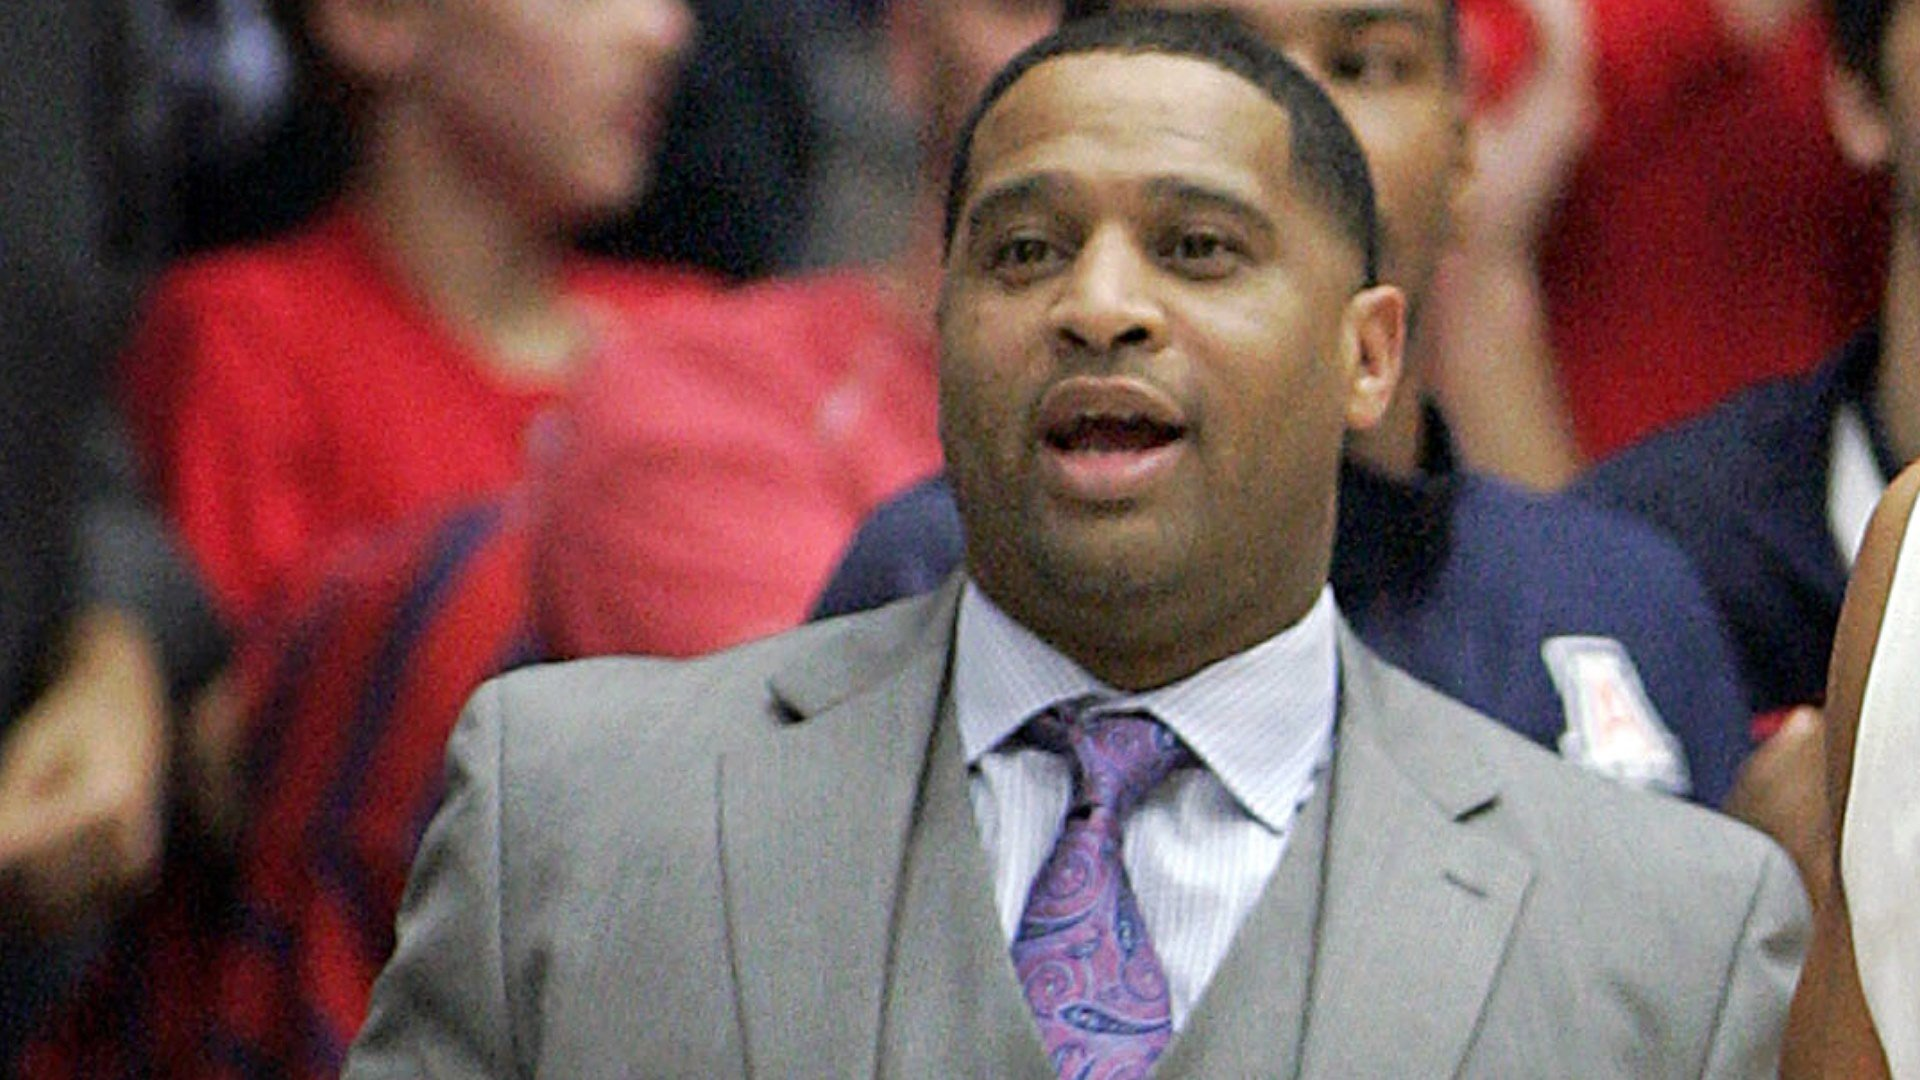 Arizona assistant coach Emmanuel Richardson was identified in court papers, and is among 10 people facing federal charges in Manhattan federal court, Tuesday, Sept. 26, 2017, in a wide probe of fraud and corruption in the NCAA, authorities said.